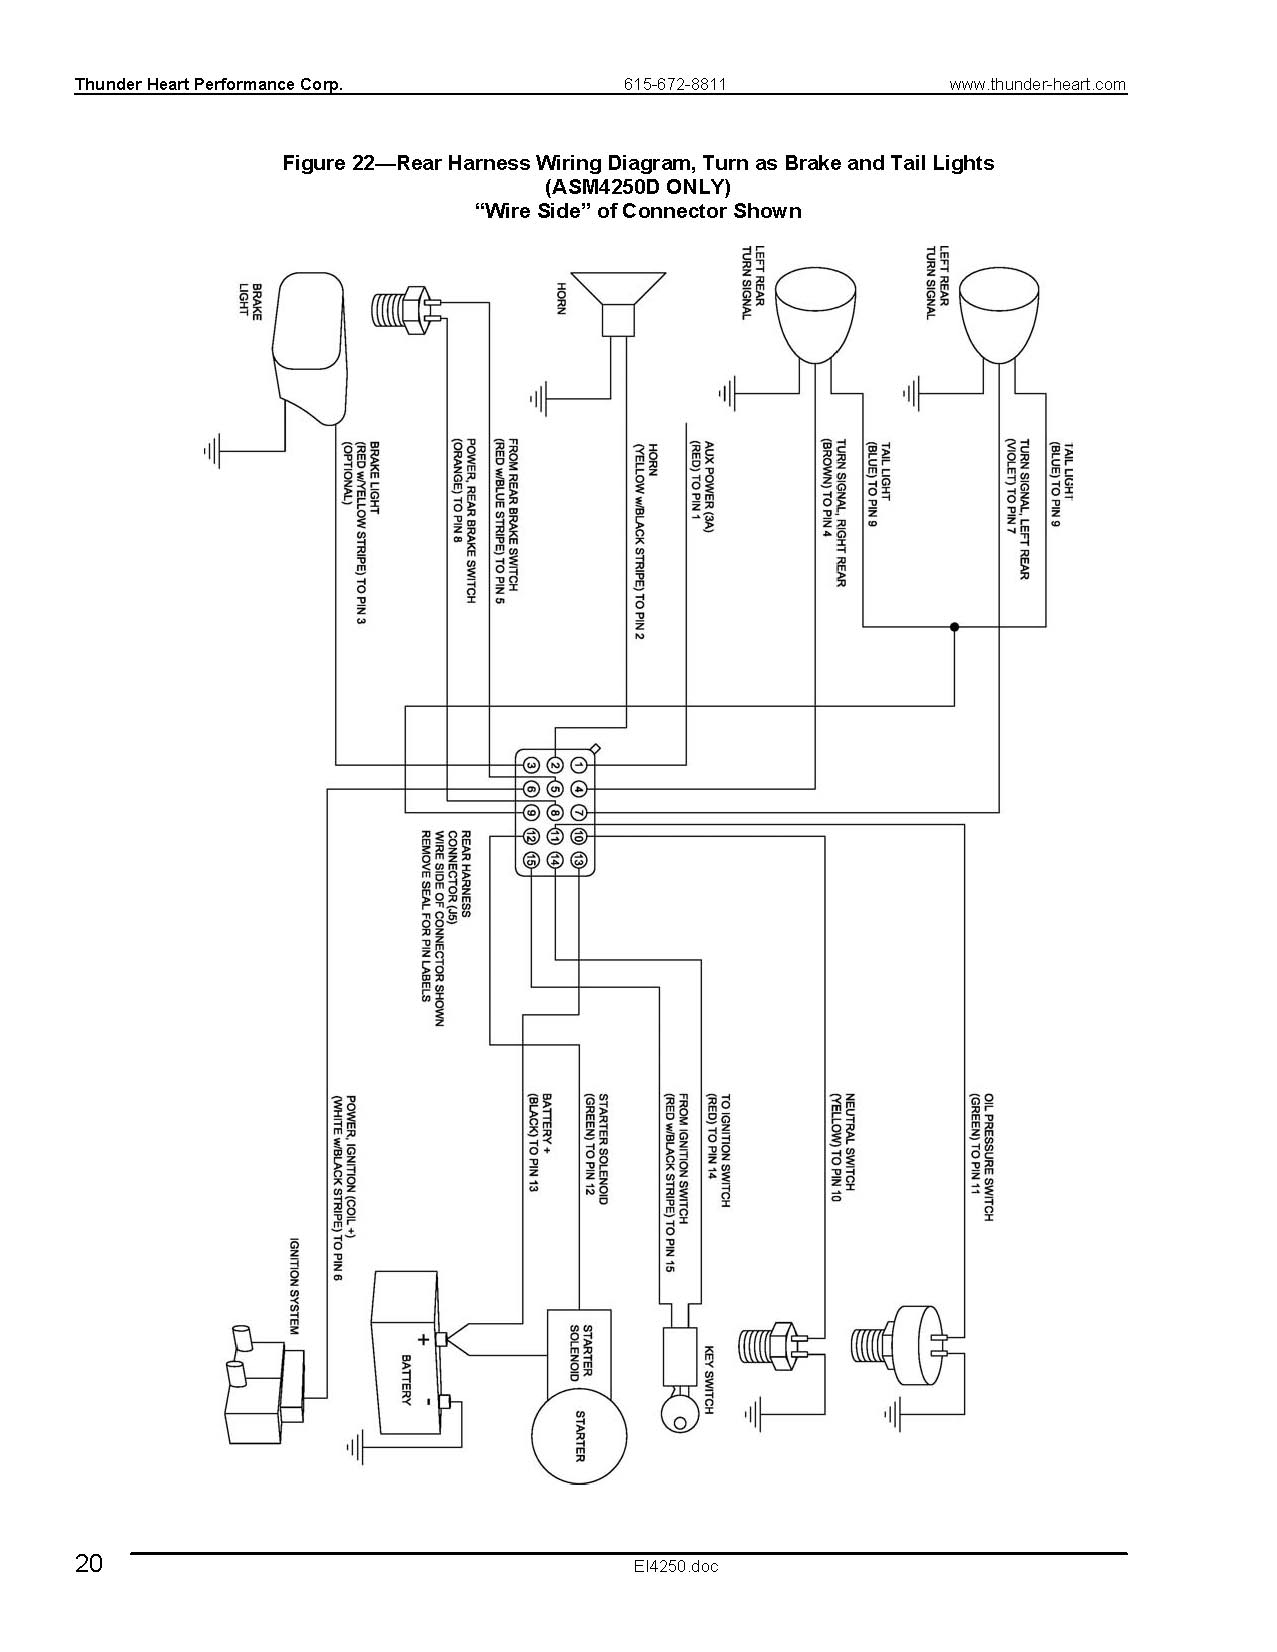 Thunderheart Wire Diagram, Thunderheart, Free Engine Image